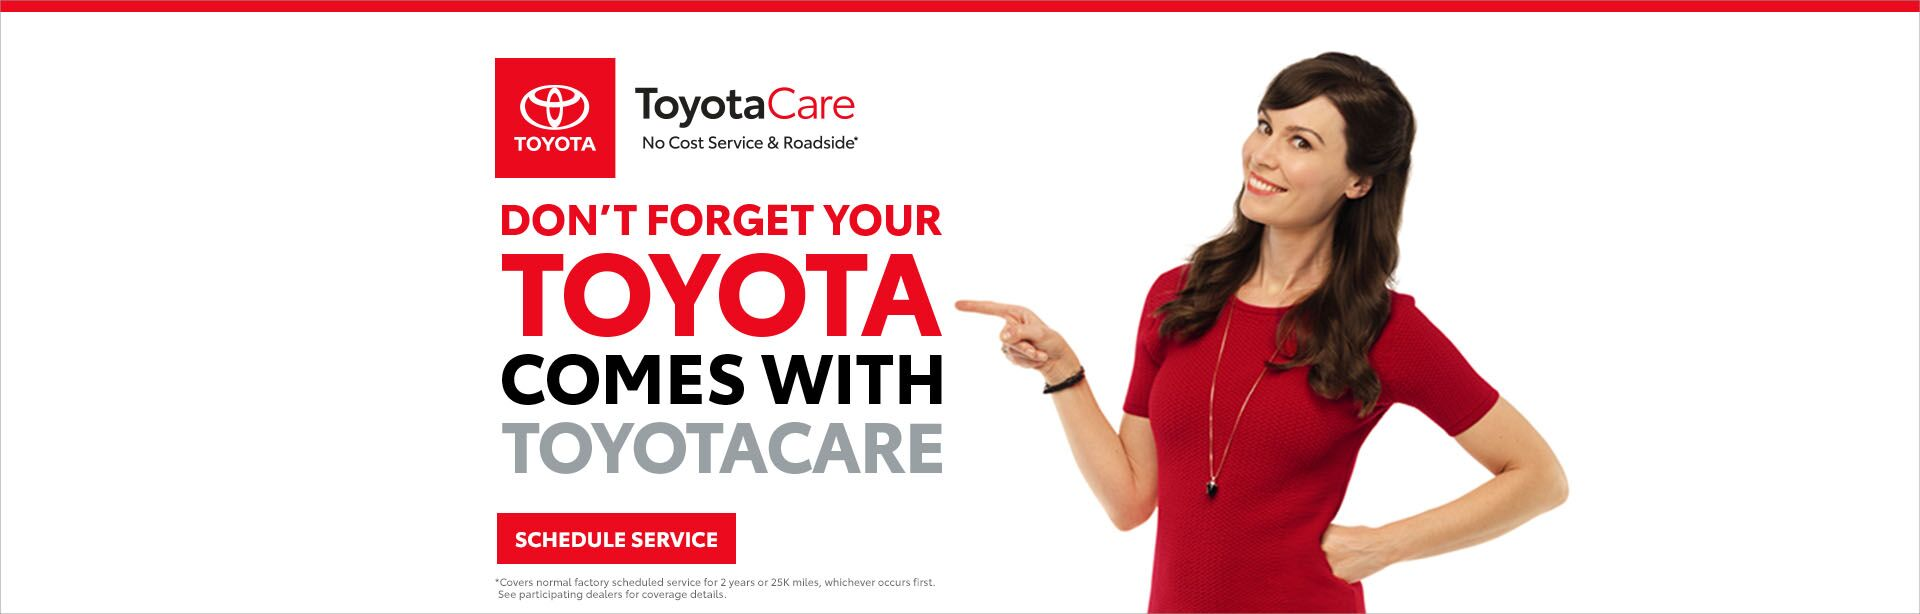 ToyotaCare Owners Dec 2018